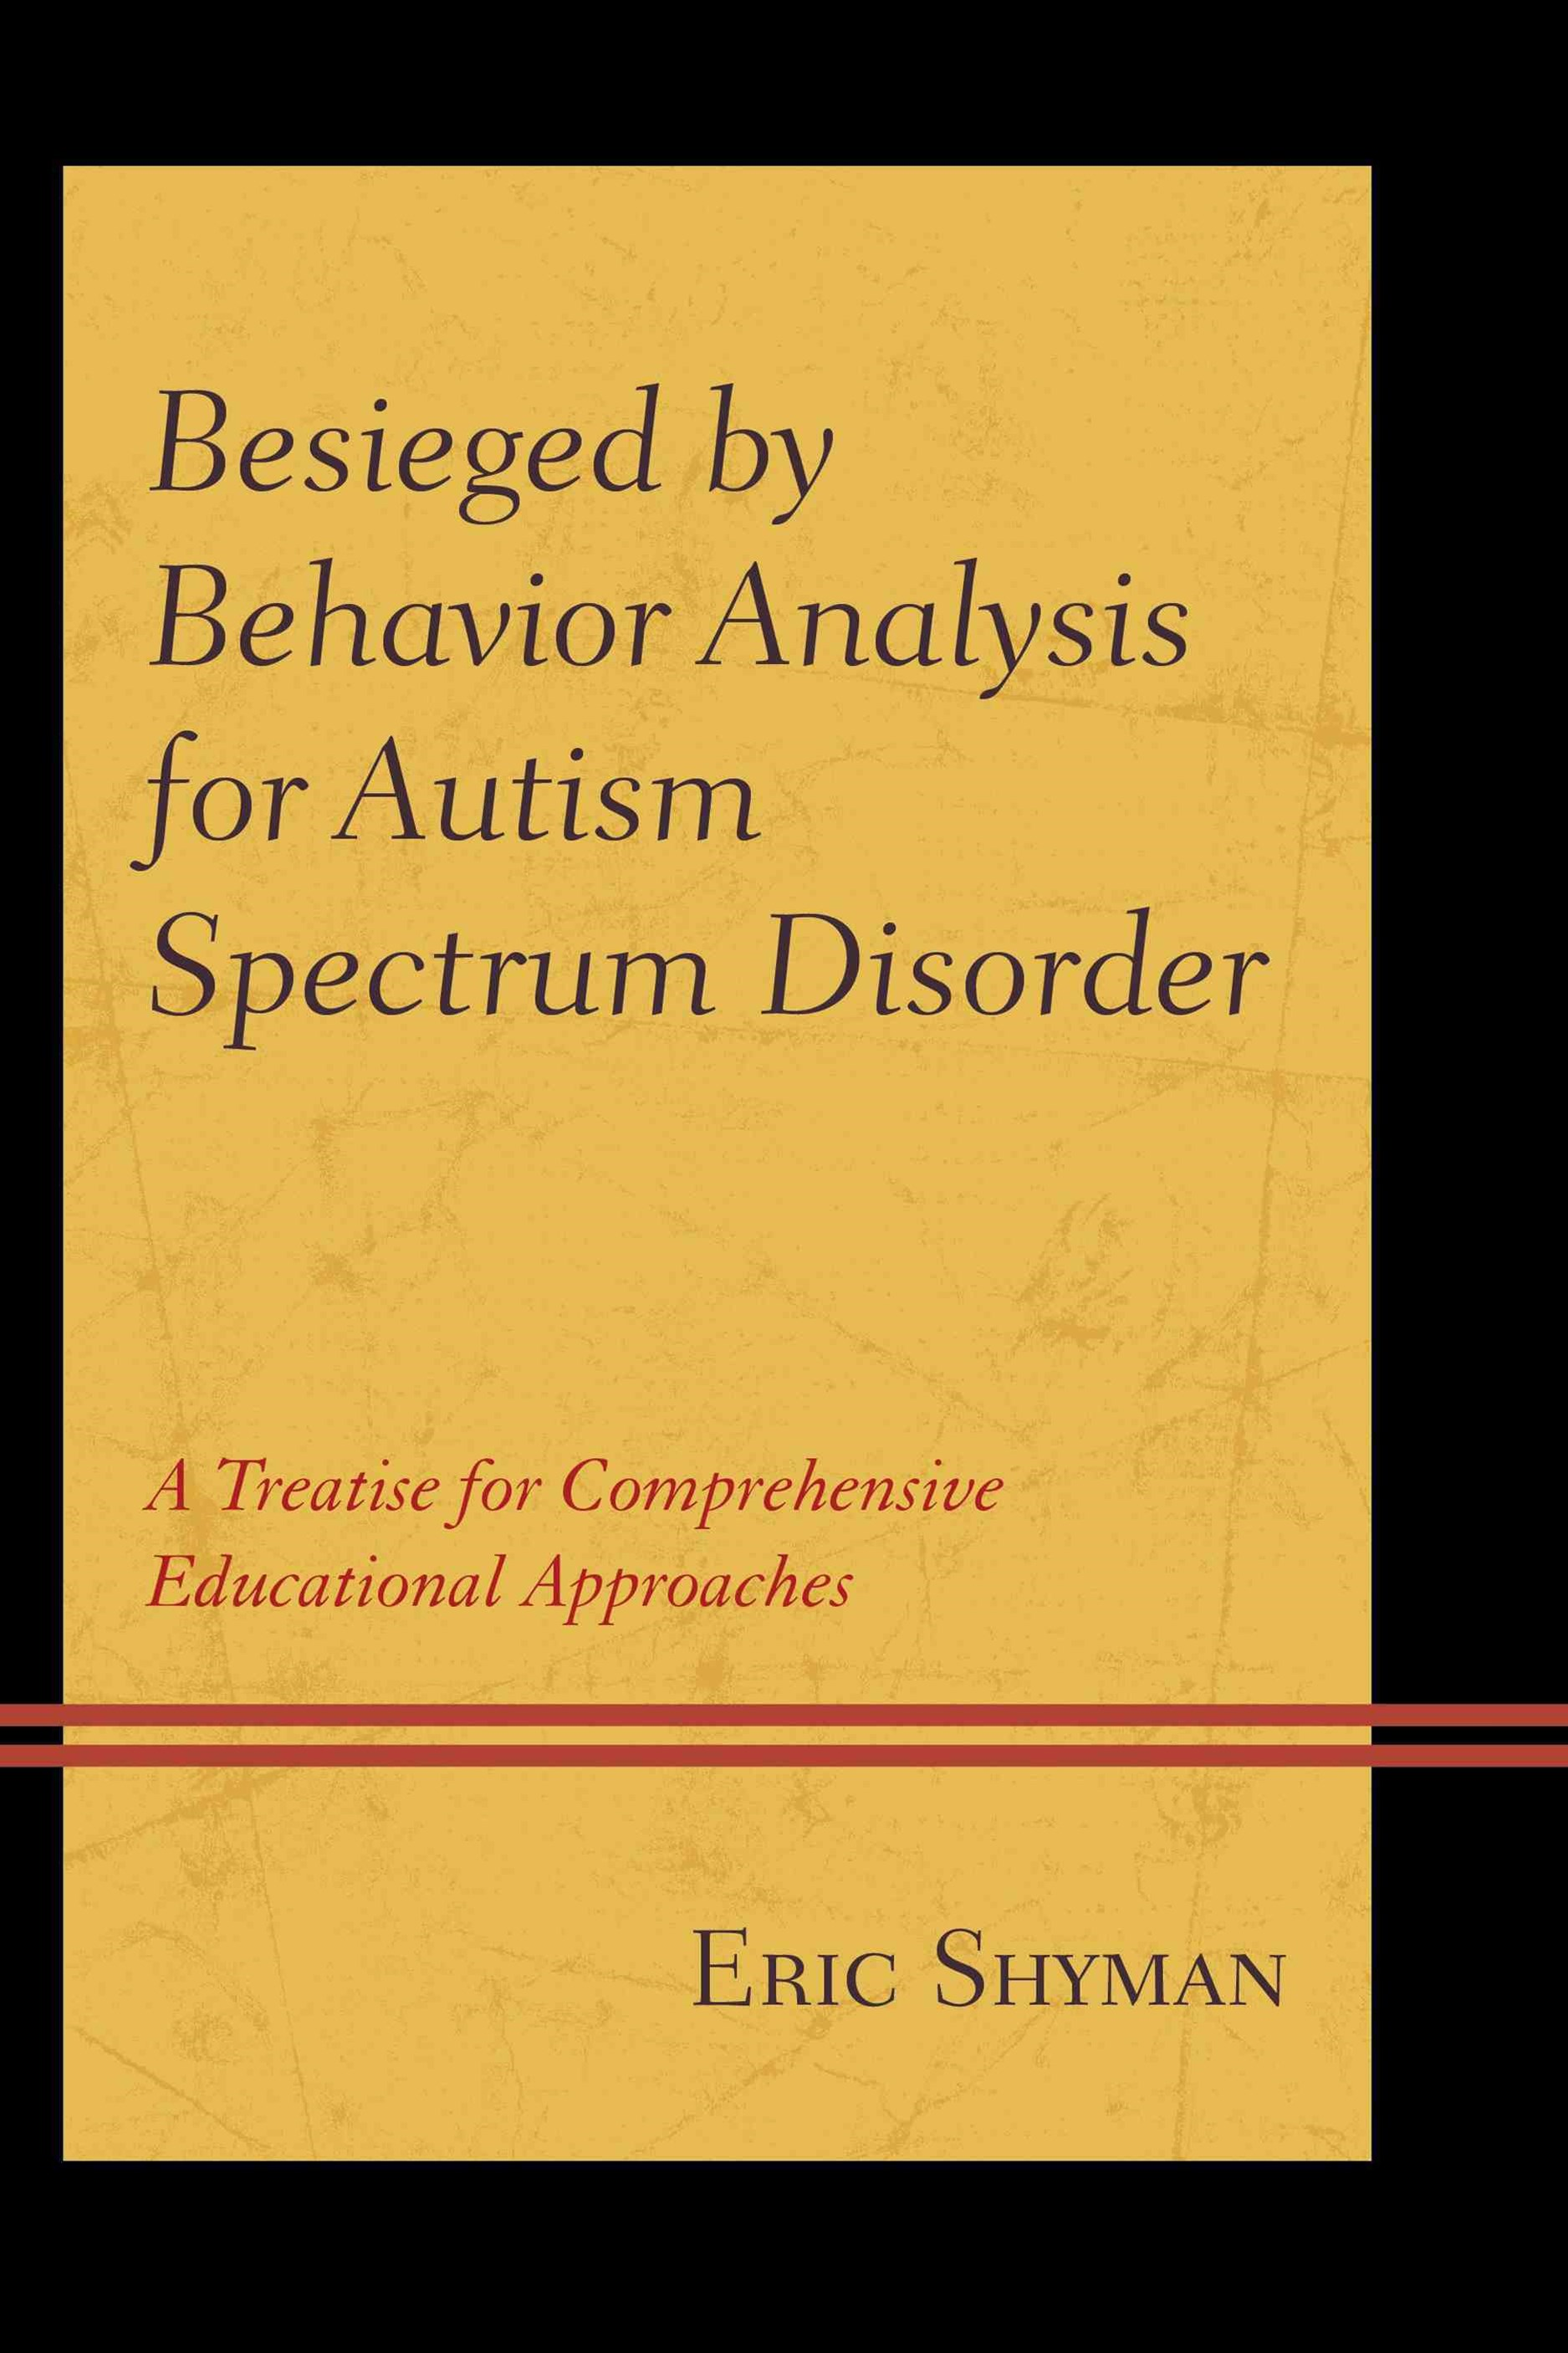 Besieged by Behavior Analysis for Autism Spectrum Disorder